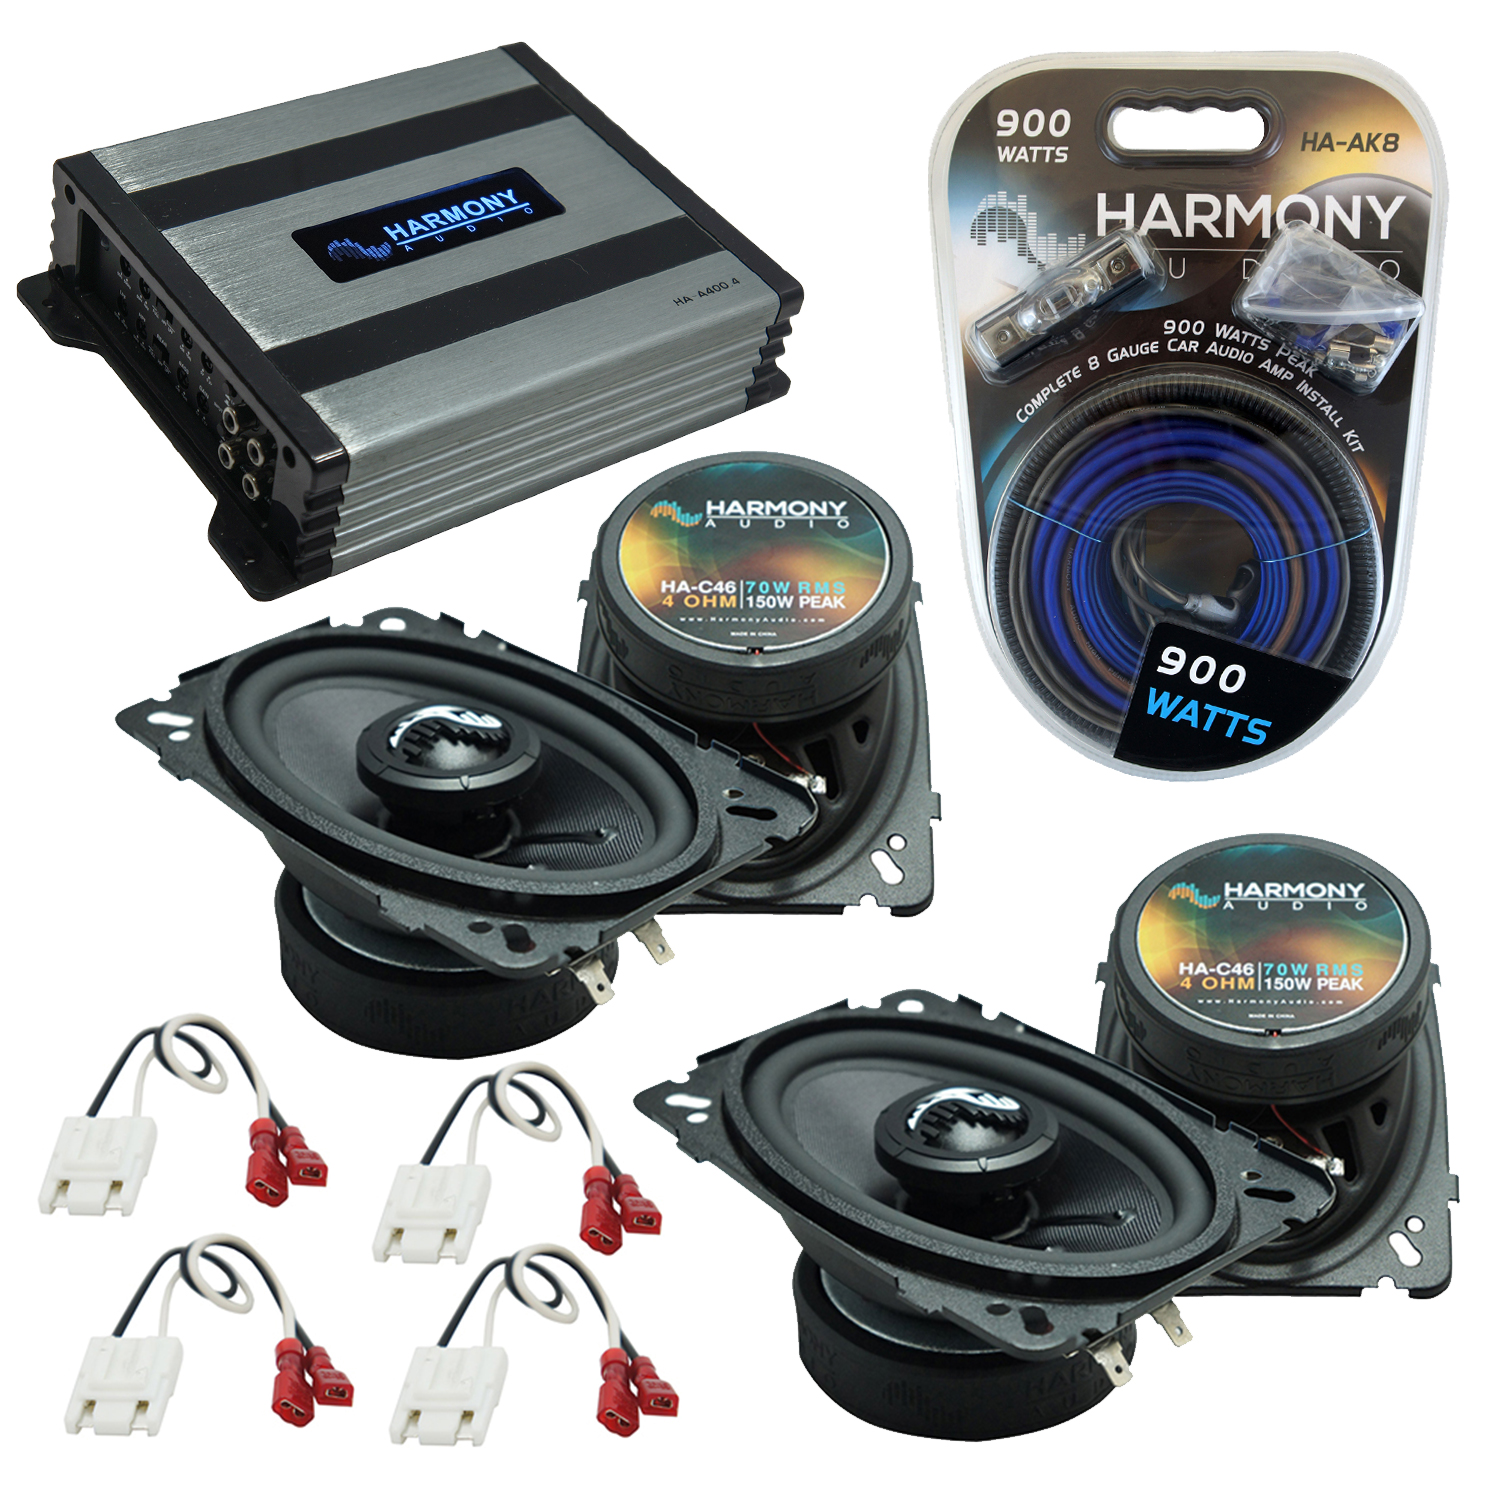 Compatible with Chevy CK Truck (Full Size) 88-94 Speakers Replacement Harmony (2)C46 & Harmony HA-A400.4